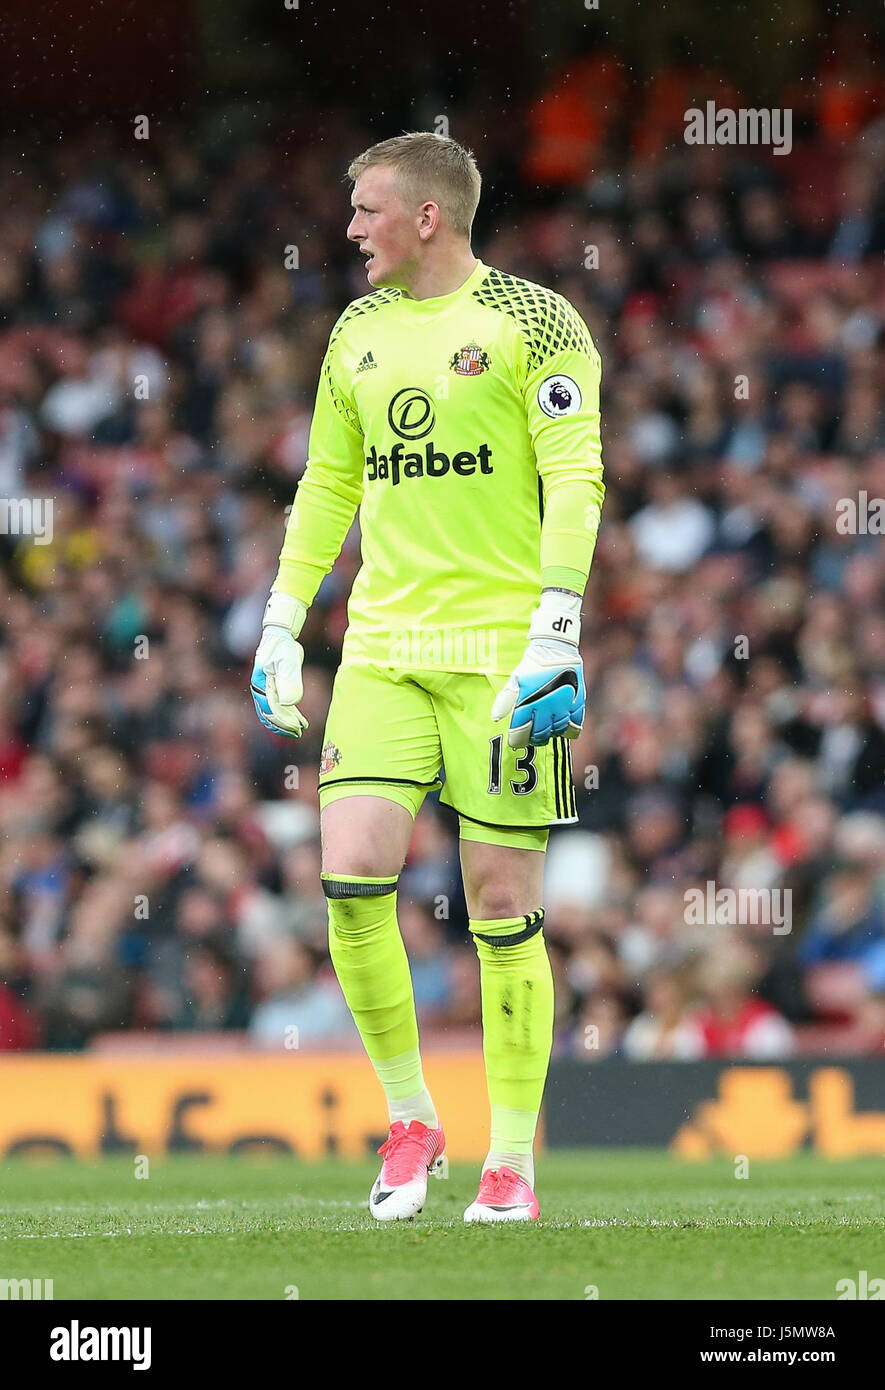 Jordan Pickford of Sunderland during the Premier League match between Arsenal and Sunderland AFC at the Emirates - Stock Image